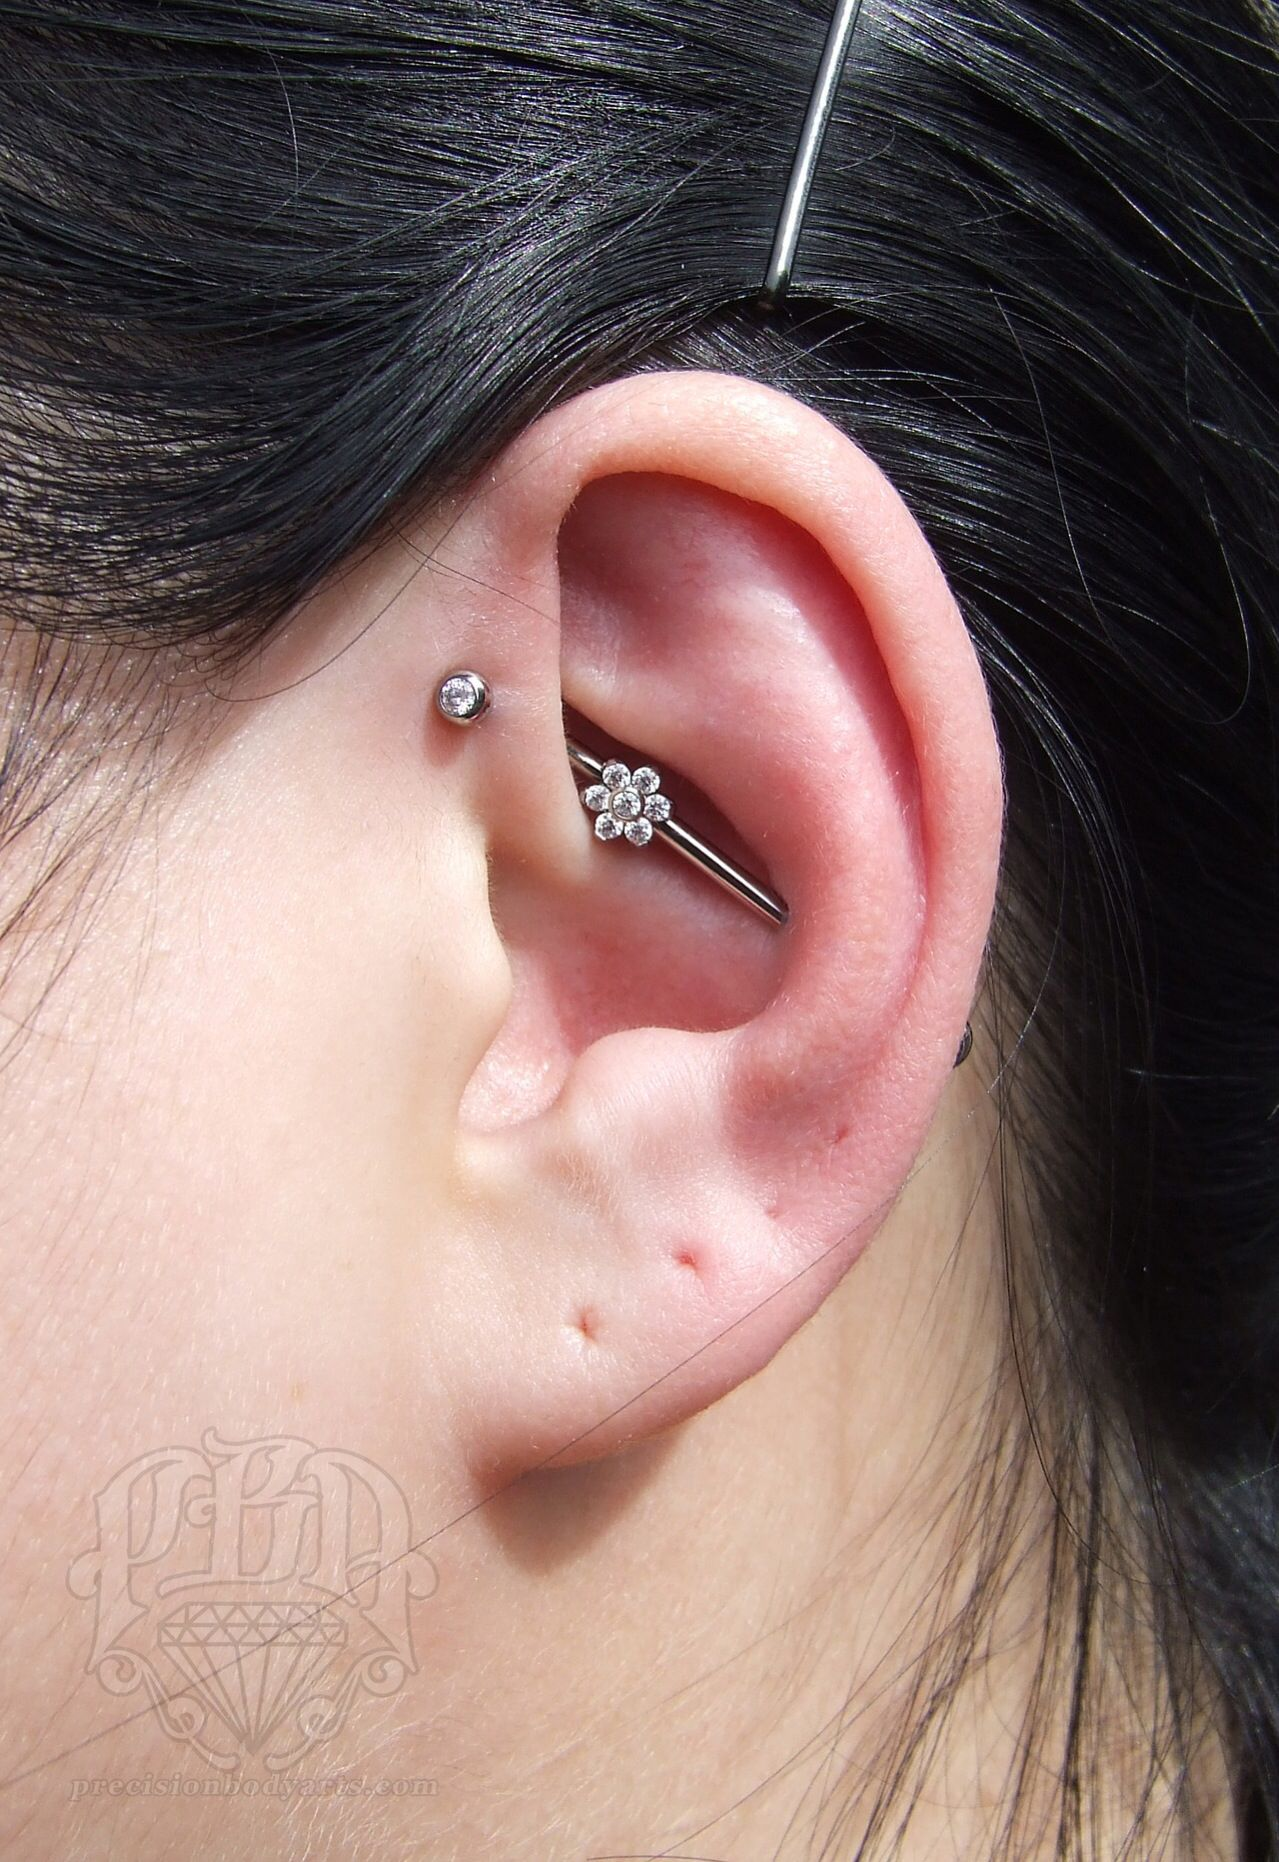 Forward Helix To Upper Conch Industrial Piercing By Ryan